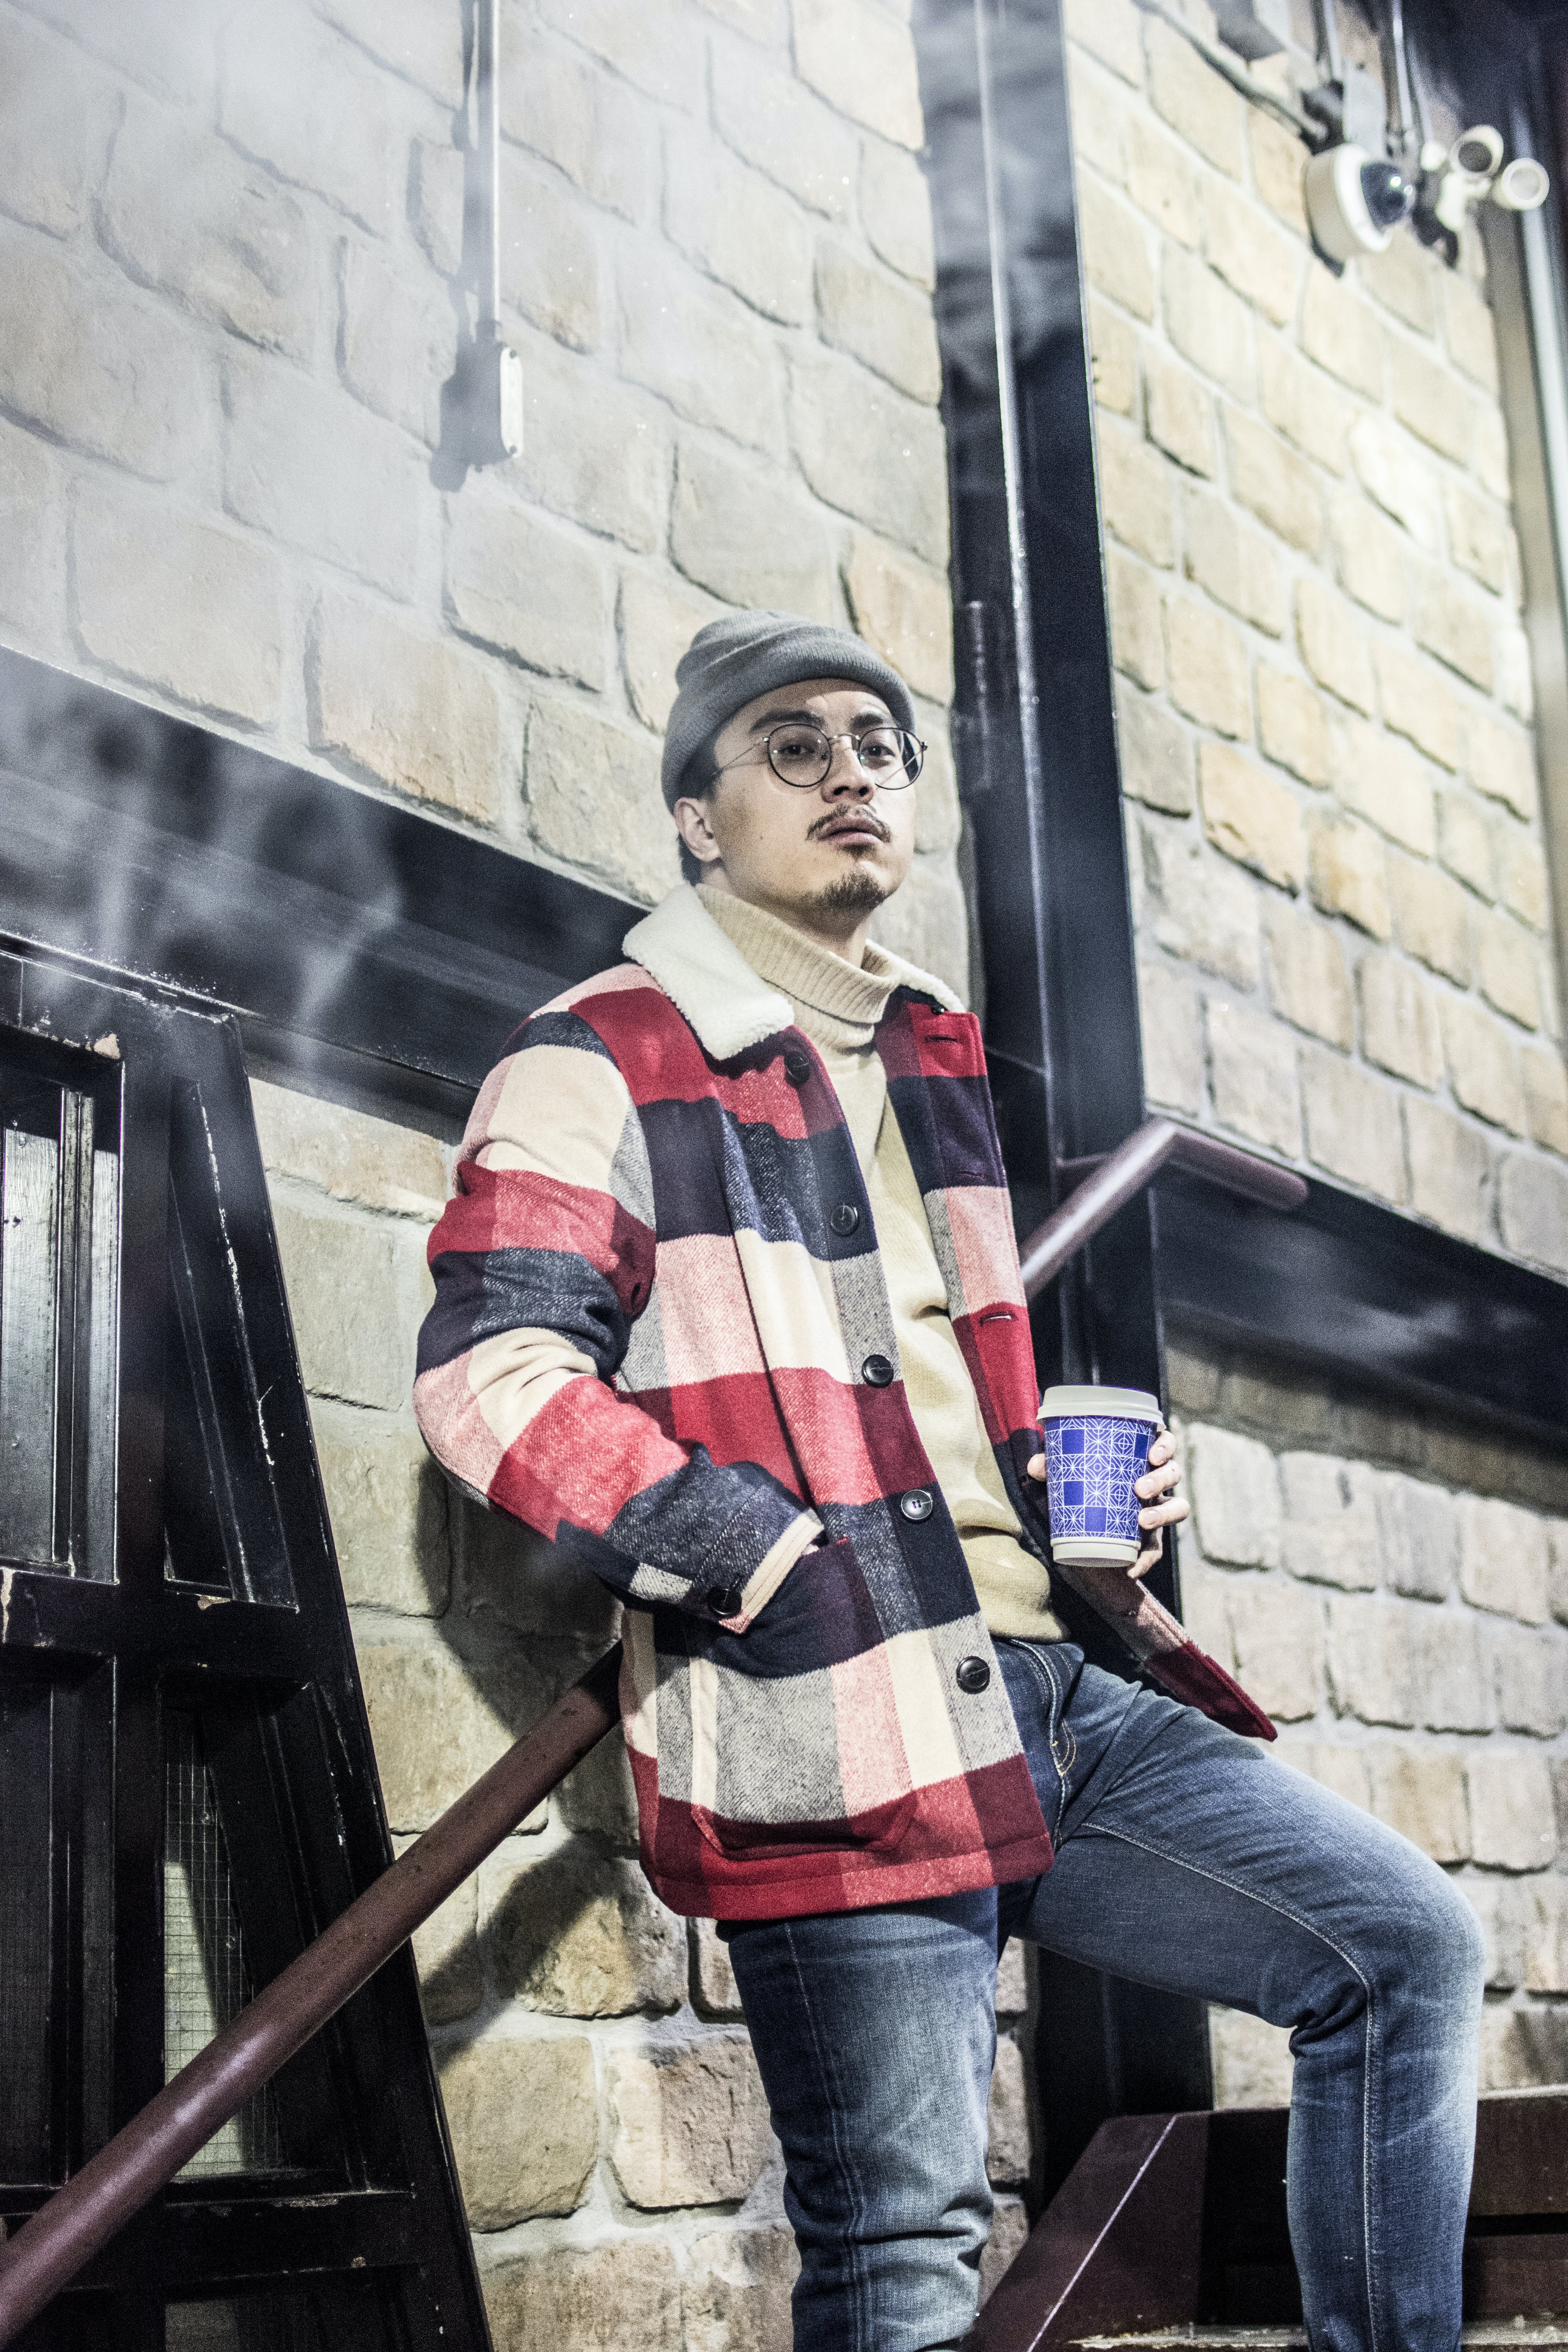 Man in Red, Black, and Grey Plaid Button-up Jacket With Blue Denim Jeans Outfit Holding Disposable Cup Stands Beside Brown Concrete Wall